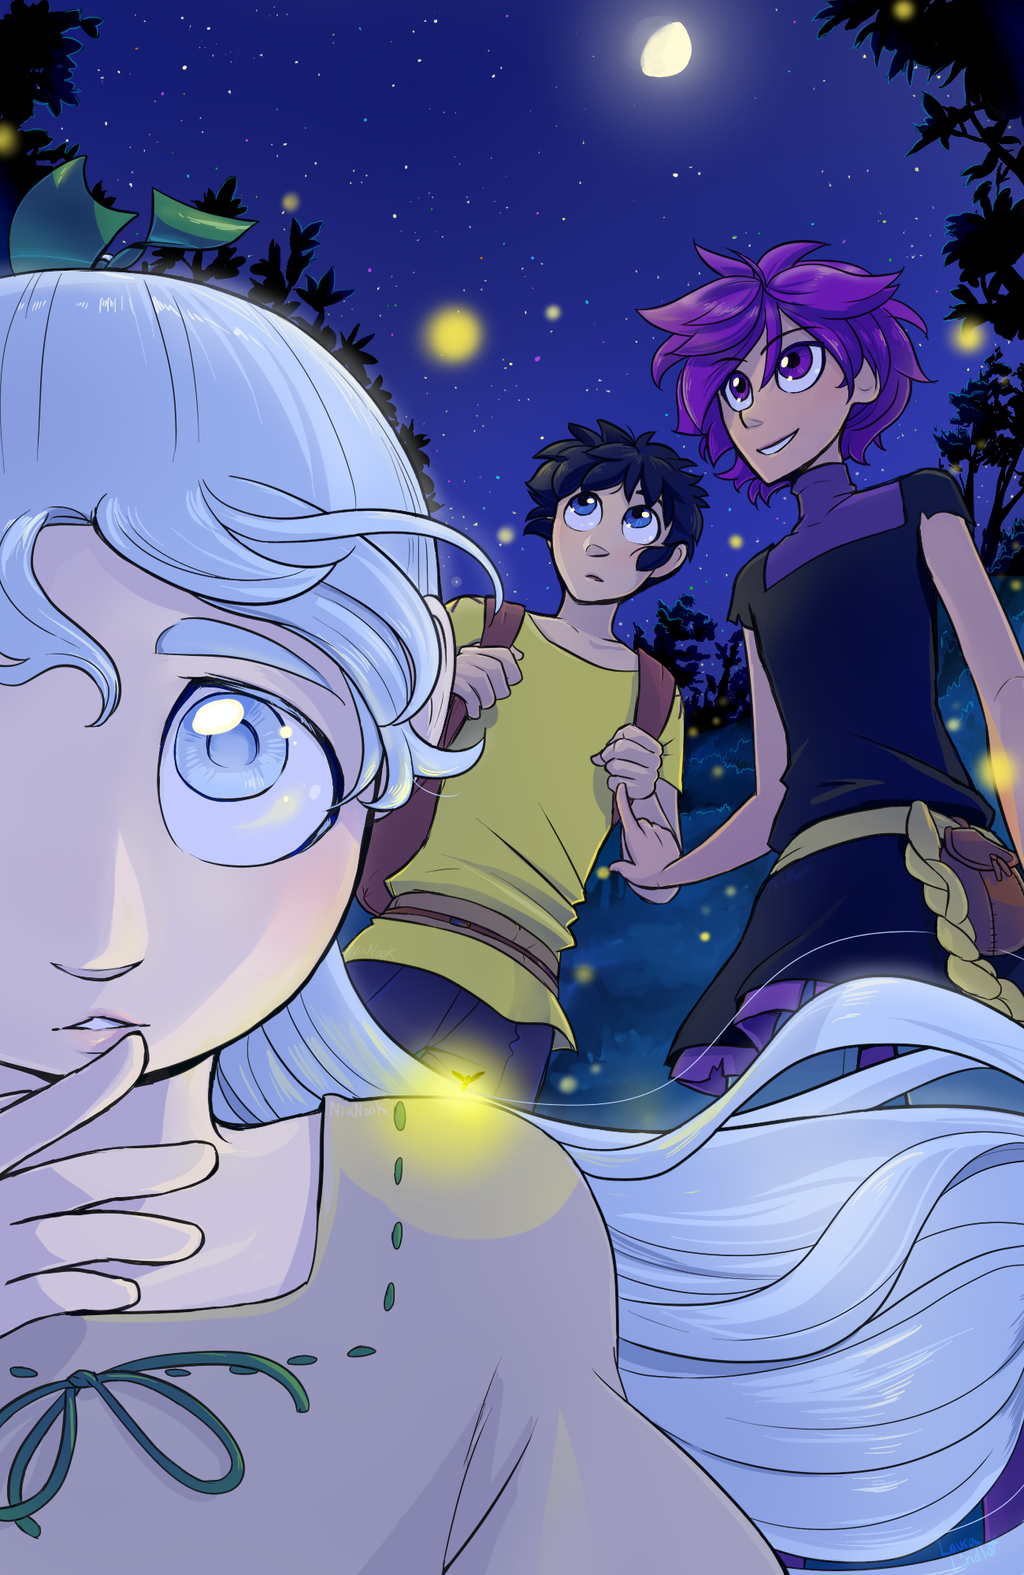 Sikue stares at the viewer with an unreadable expression. Behind her, Yokiro and Tatsuma gaze at the night sky, fireflies surrounding them in the forest.